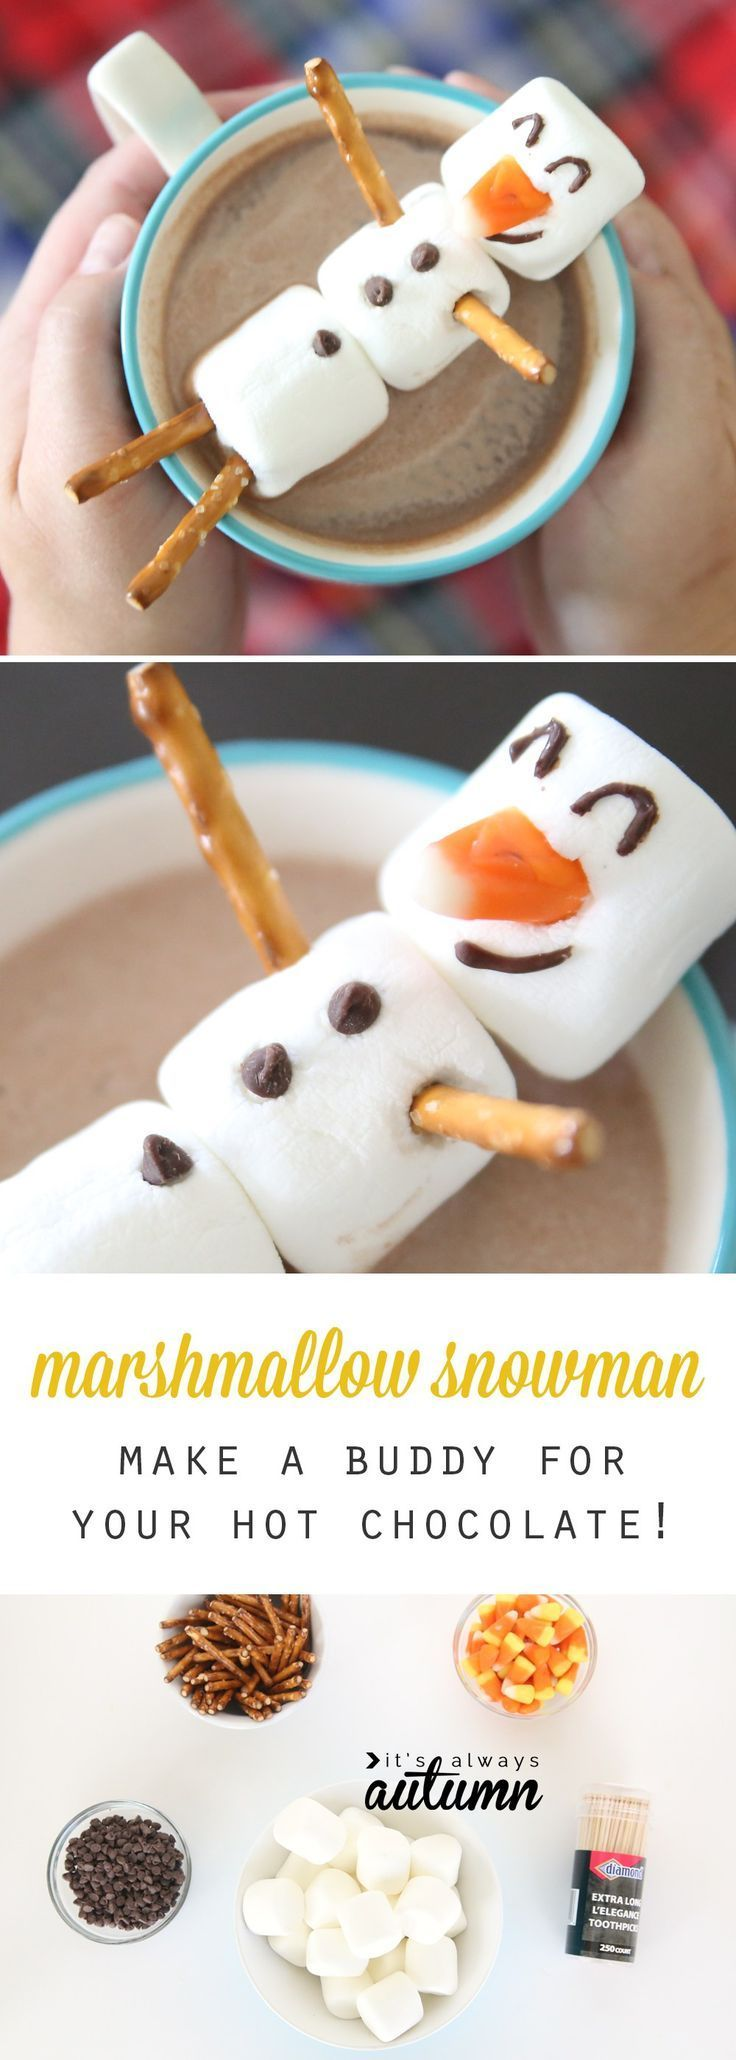 Over 30 Easy Winter themed crafts for kids to make  and fun food treat ideas to brighten the house and classroom! Perfect for winter parties. www.kidfriendlyth... (Winter Bake Ideas)